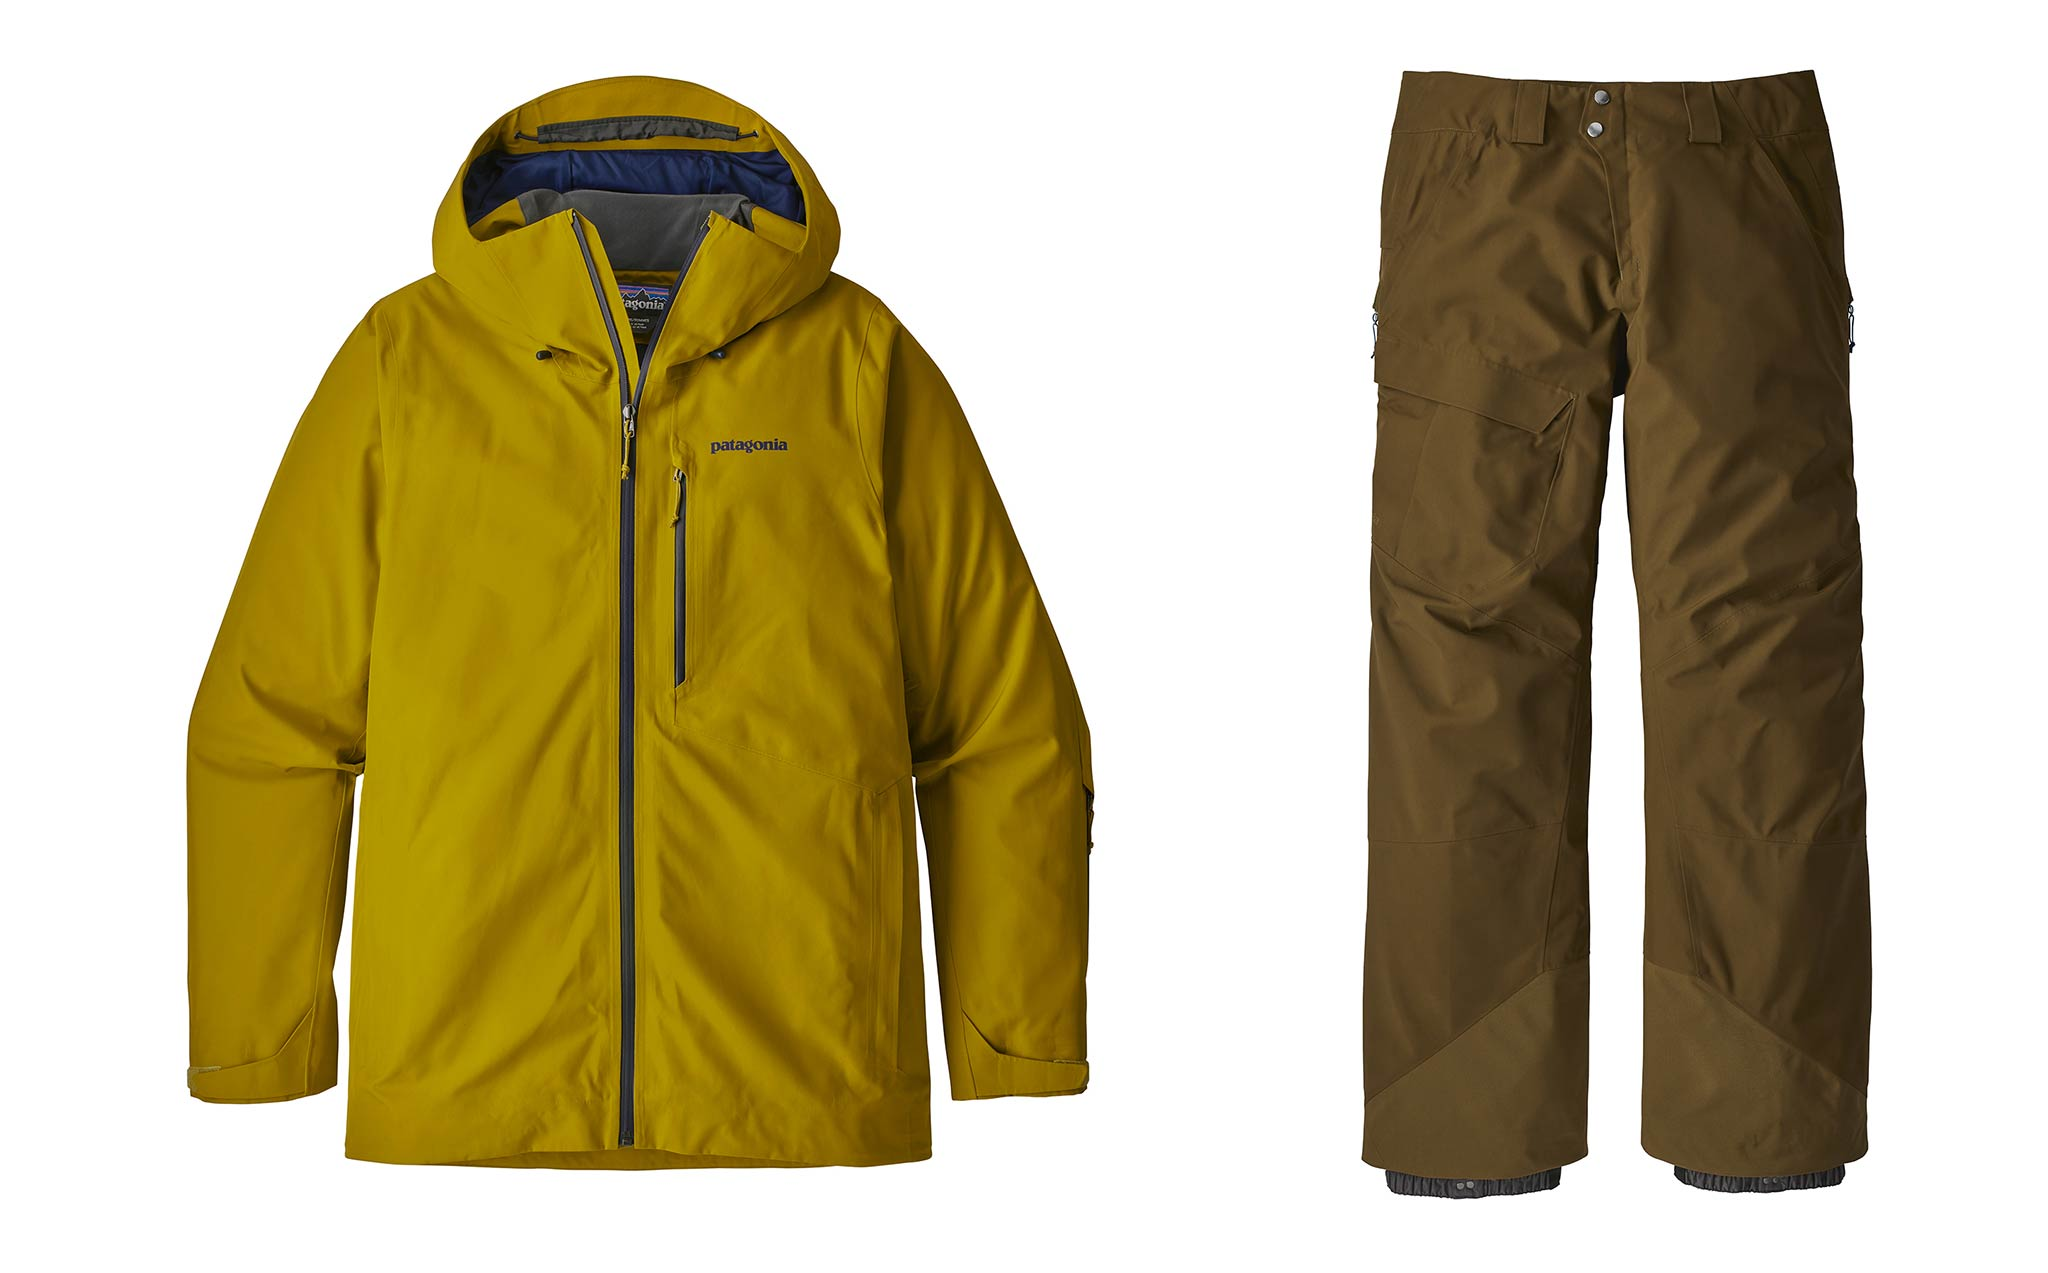 Männer: Patagonia Powder-Bowl Jacket & Pants